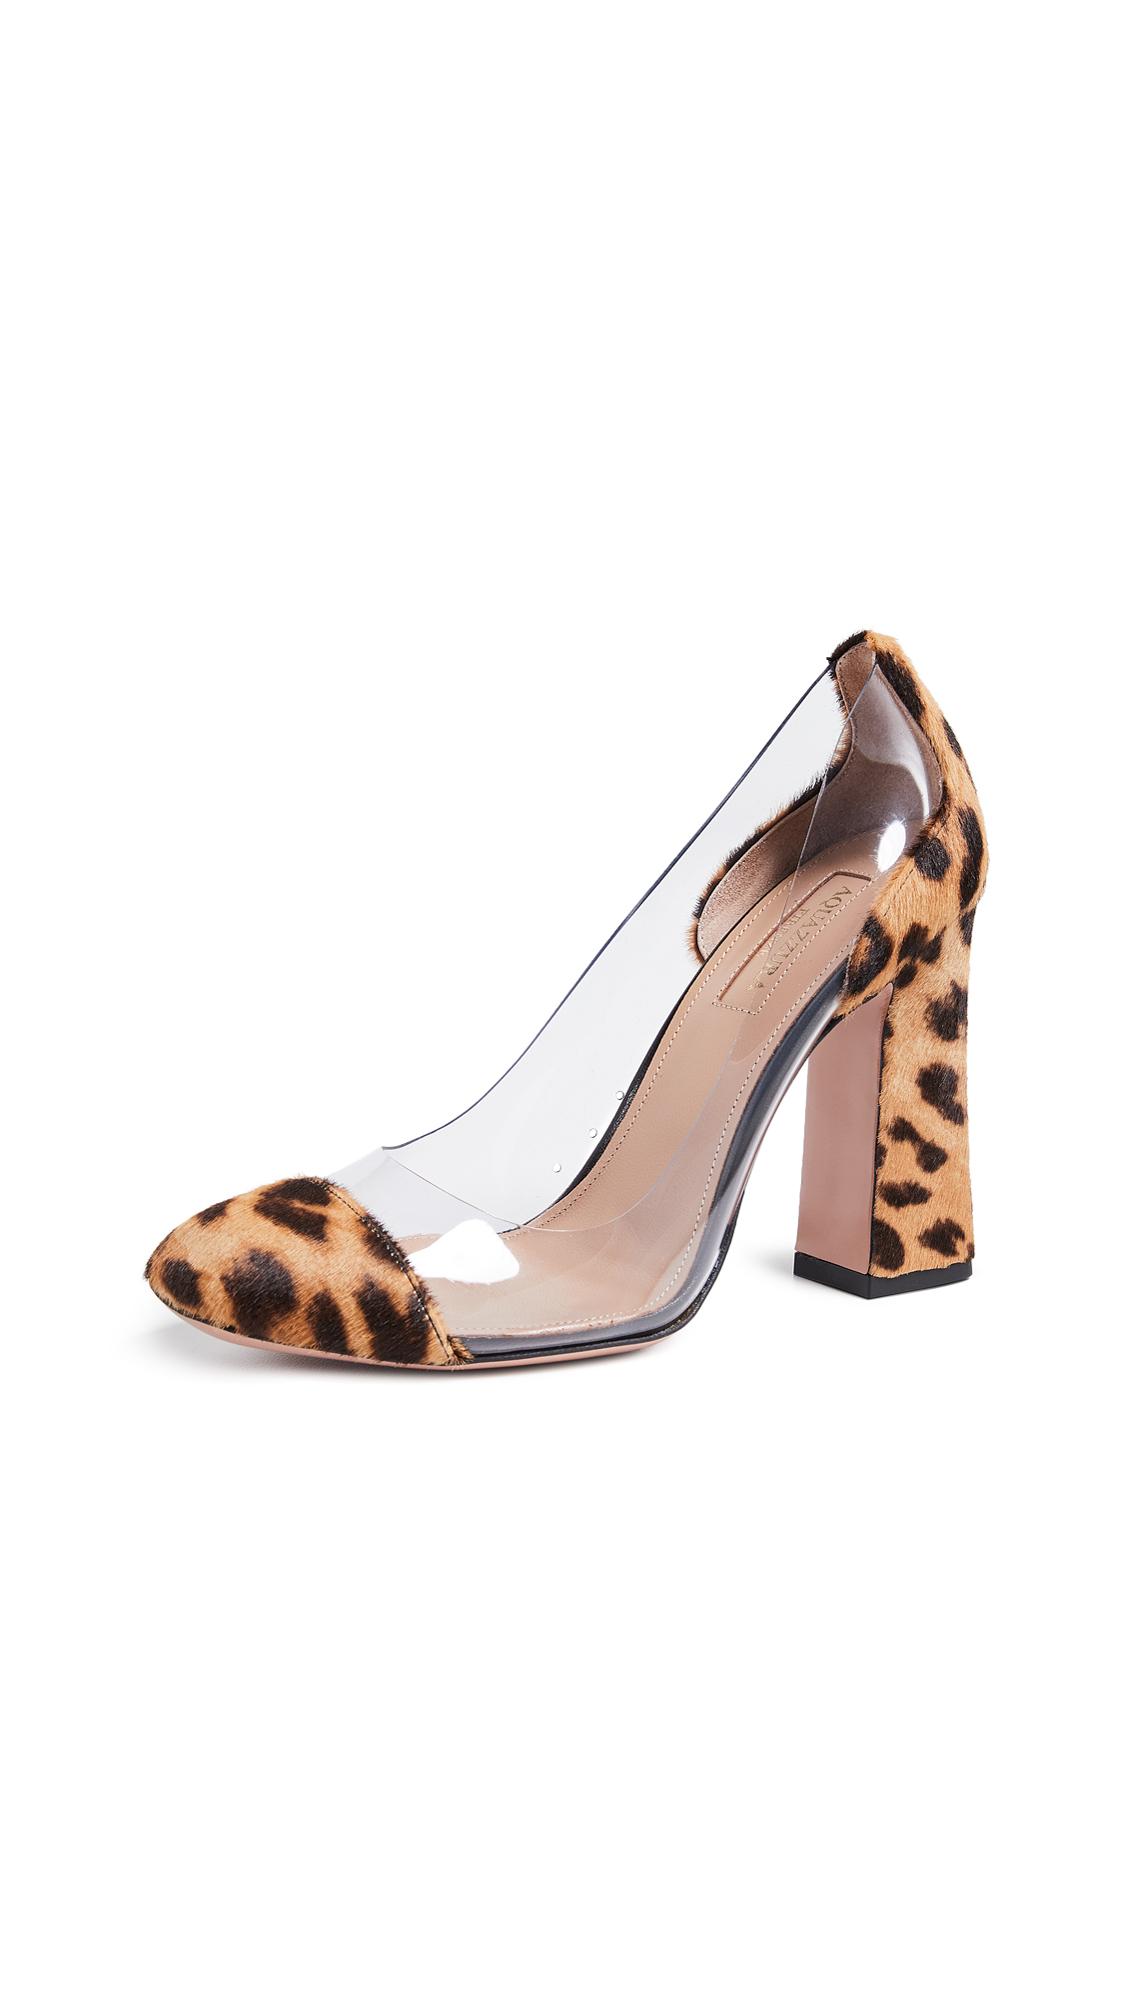 Aquazzura Optic 105 Pumps - Caramel Leopard